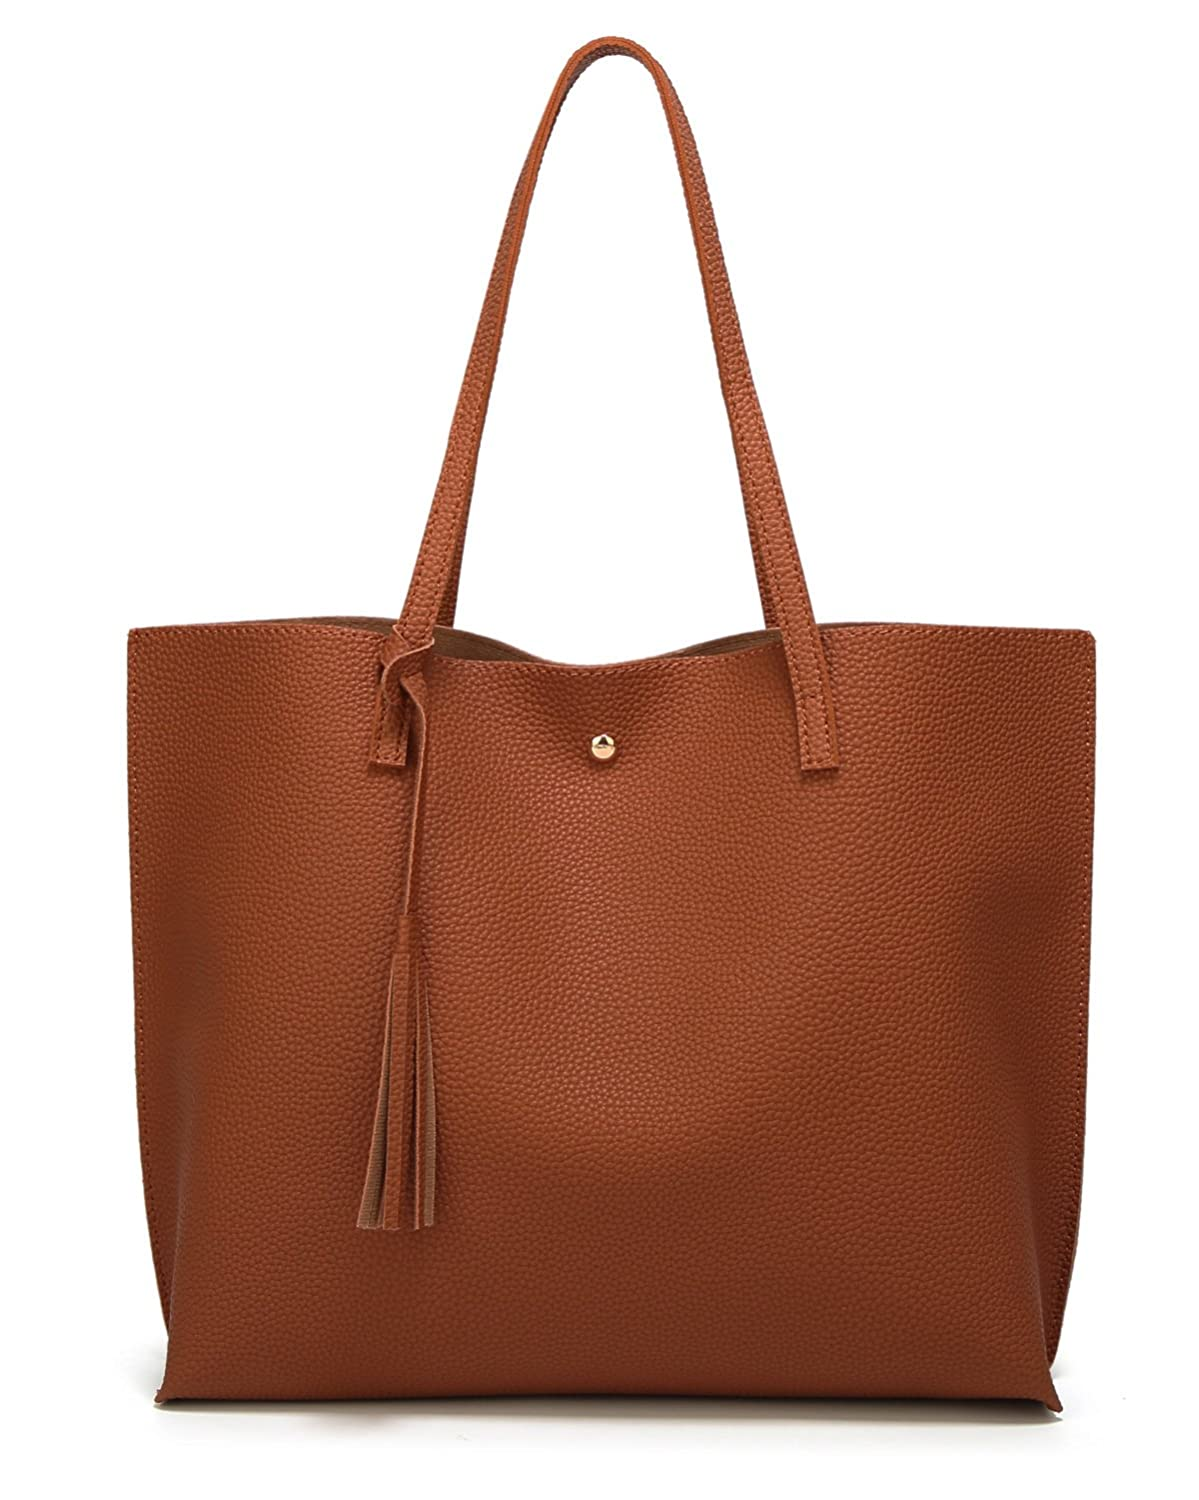 Women's Soft Leather Tote Shoulder Bag from Dreubea, Big Capacity Tassel Handbag WB-009-Ap